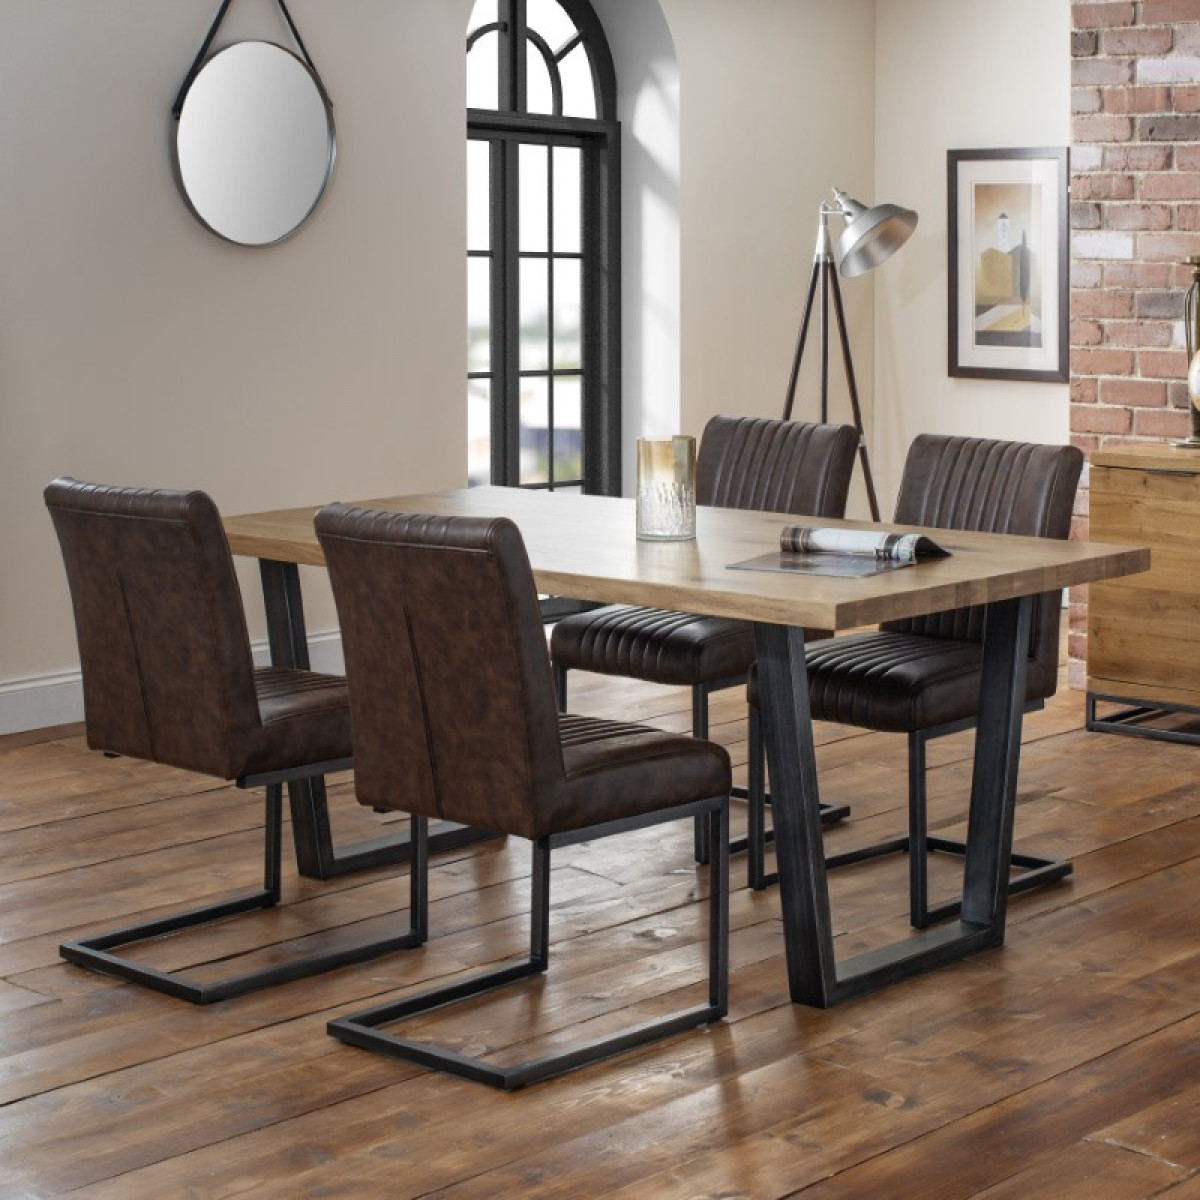 08741debd0 Dining Set - Julian Bowen Brooklyn Oak Dining Table and 4 Dining Chairs  BRO101